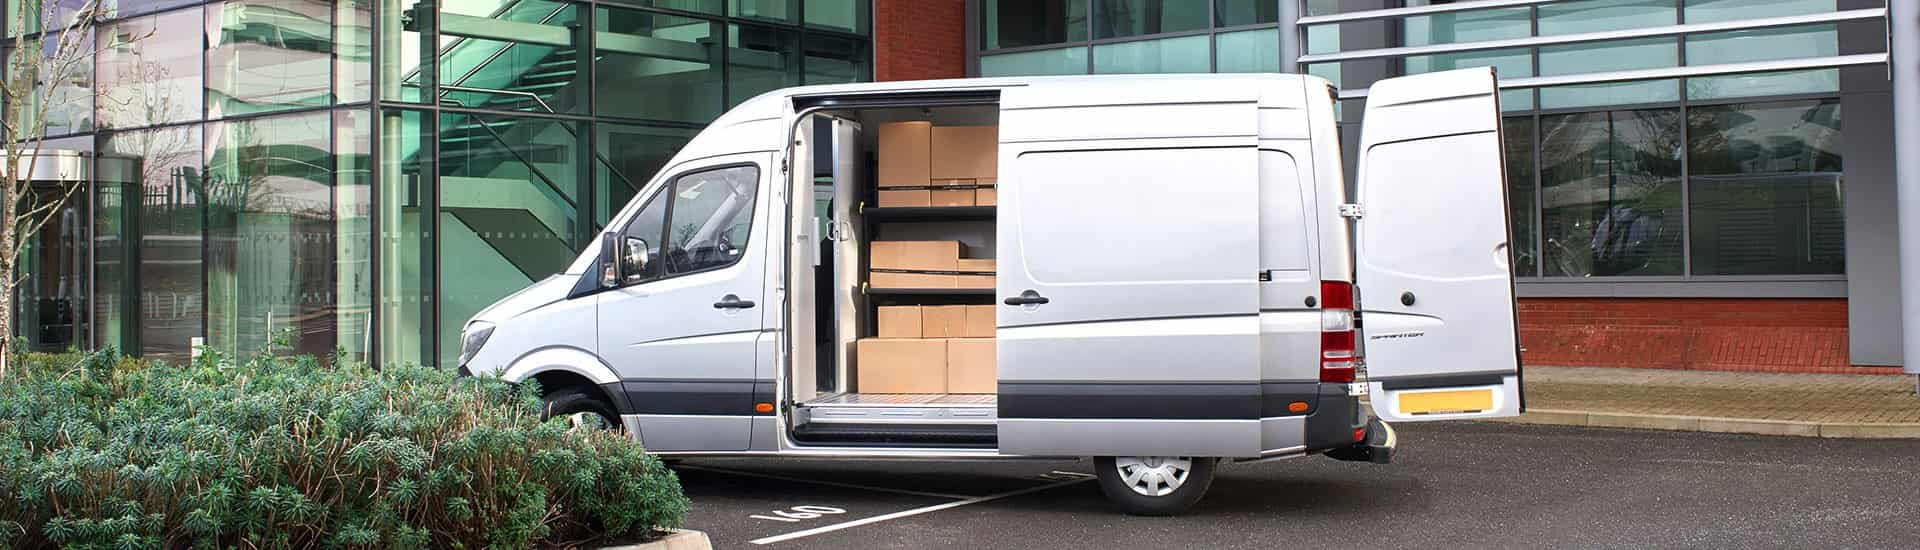 van shelving system for delivery vans modul express